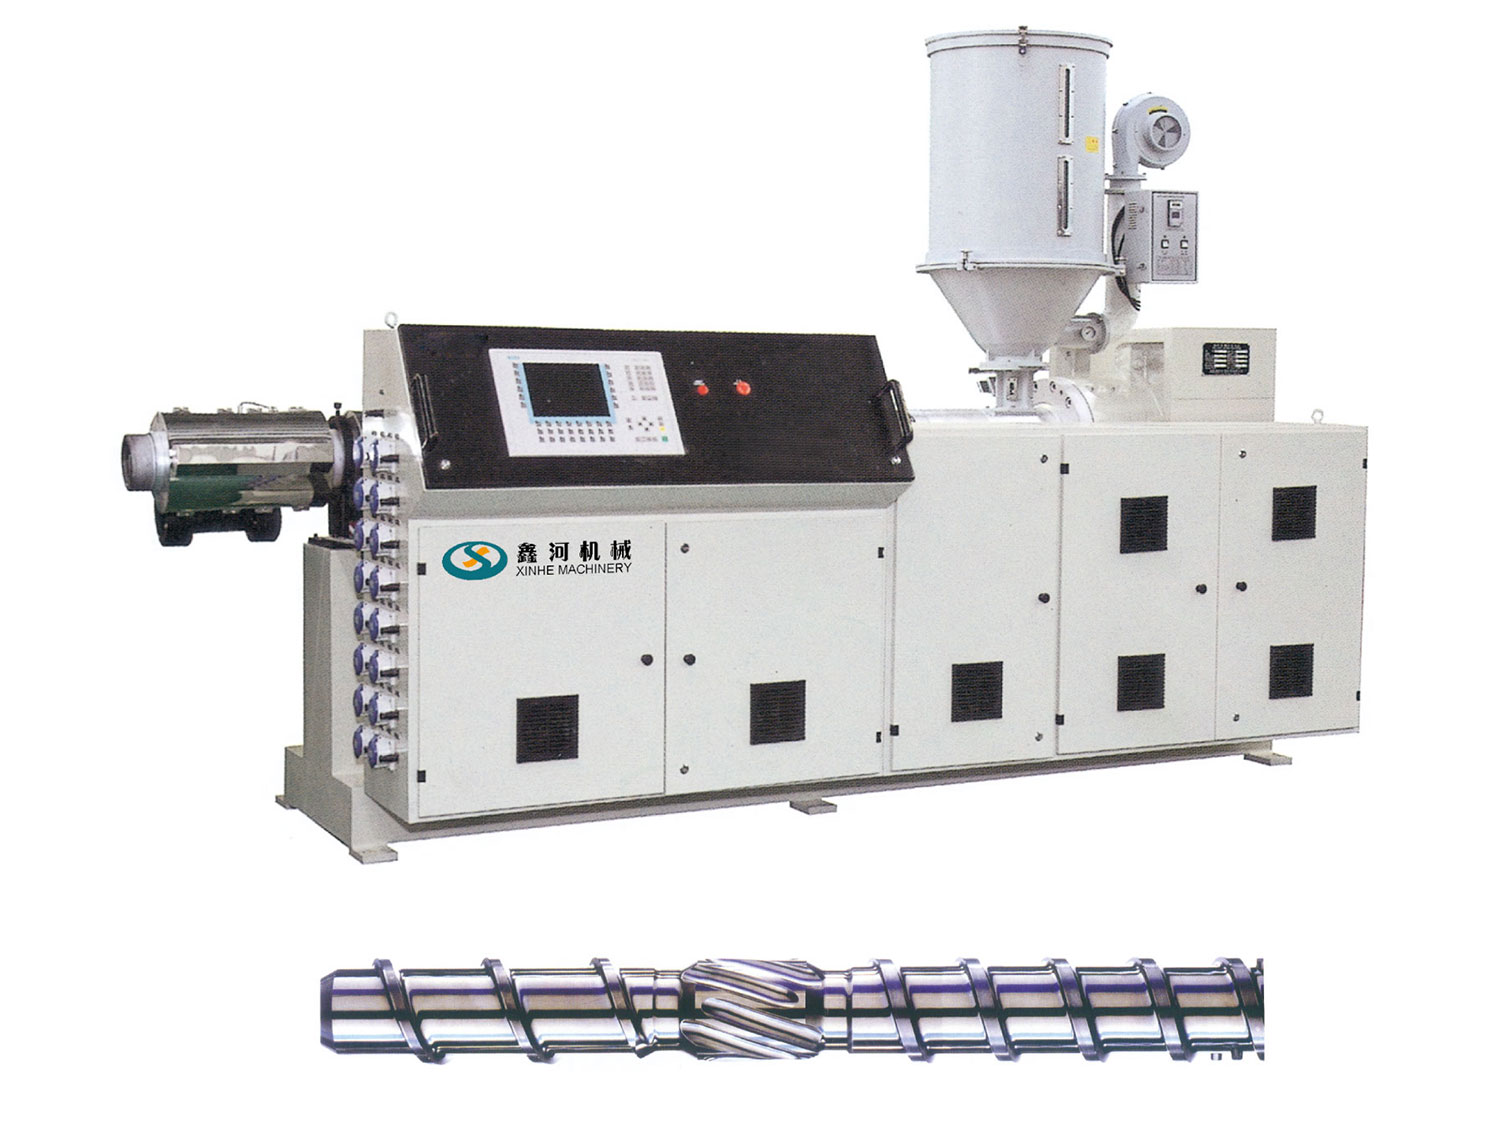 SJ Series Single Plastics Extruder